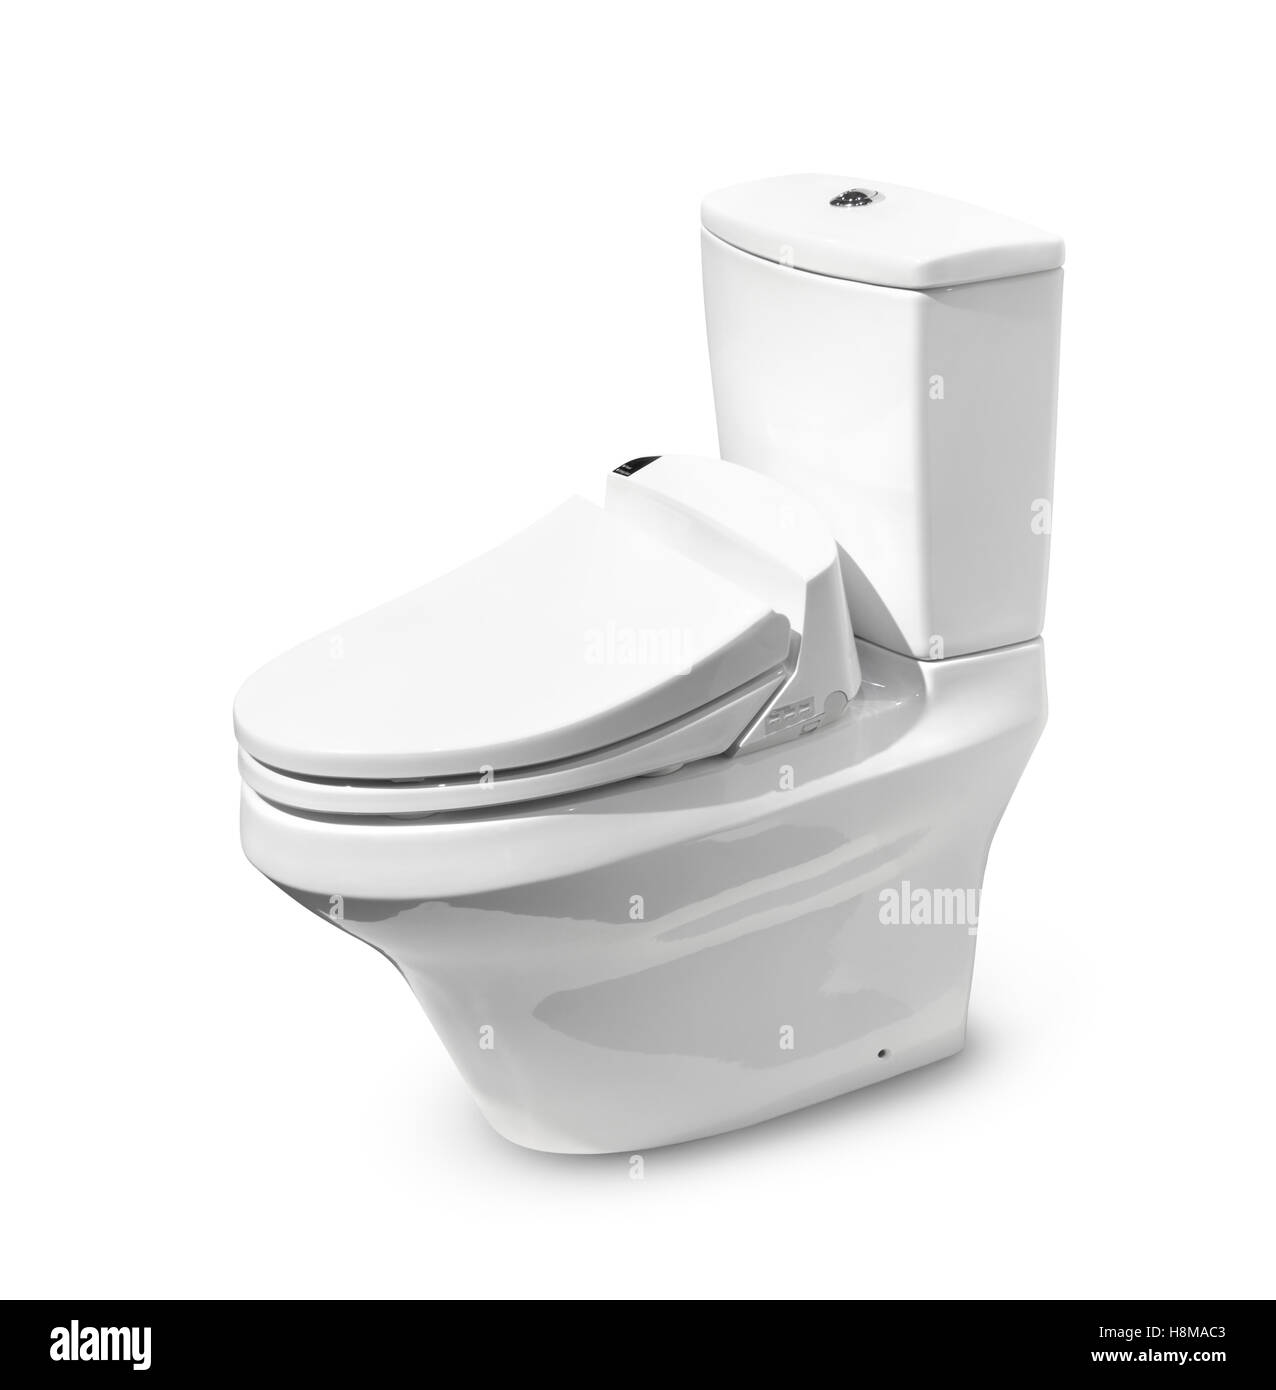 Toilet Facility Stock Photos & Toilet Facility Stock Images - Alamy